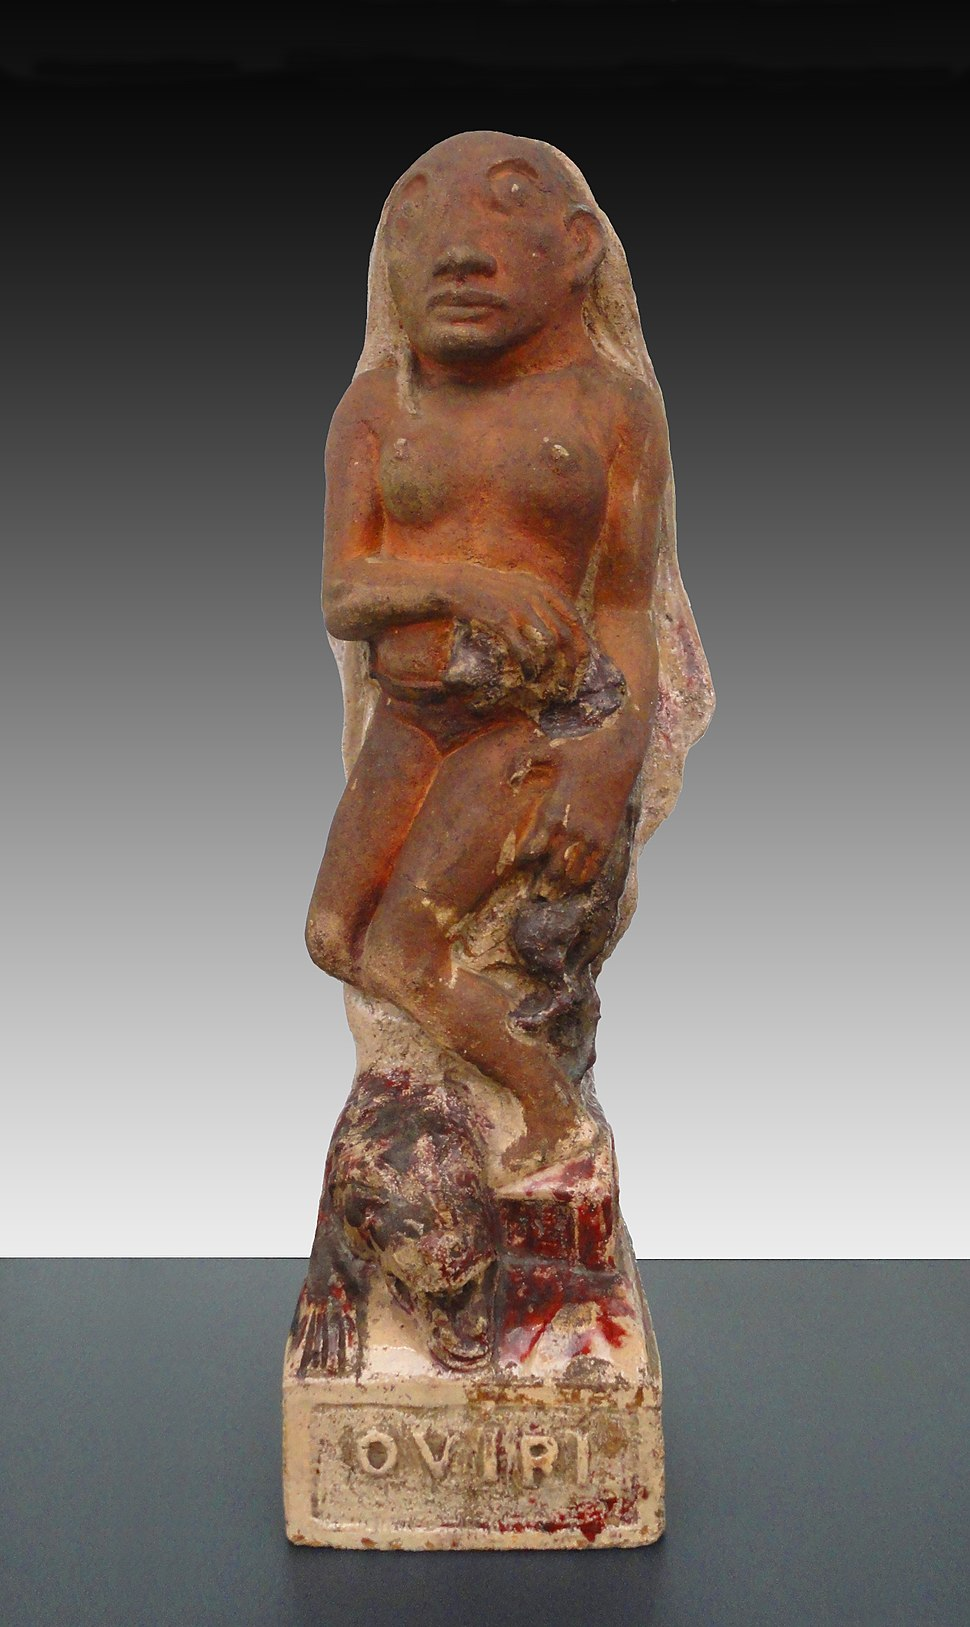 Paul Gauguin, 1894, Oviri (Sauvage), partially glazed stoneware, 75 x 19 x 27 cm, Mus%C3%A9e d%27Orsay, Paris